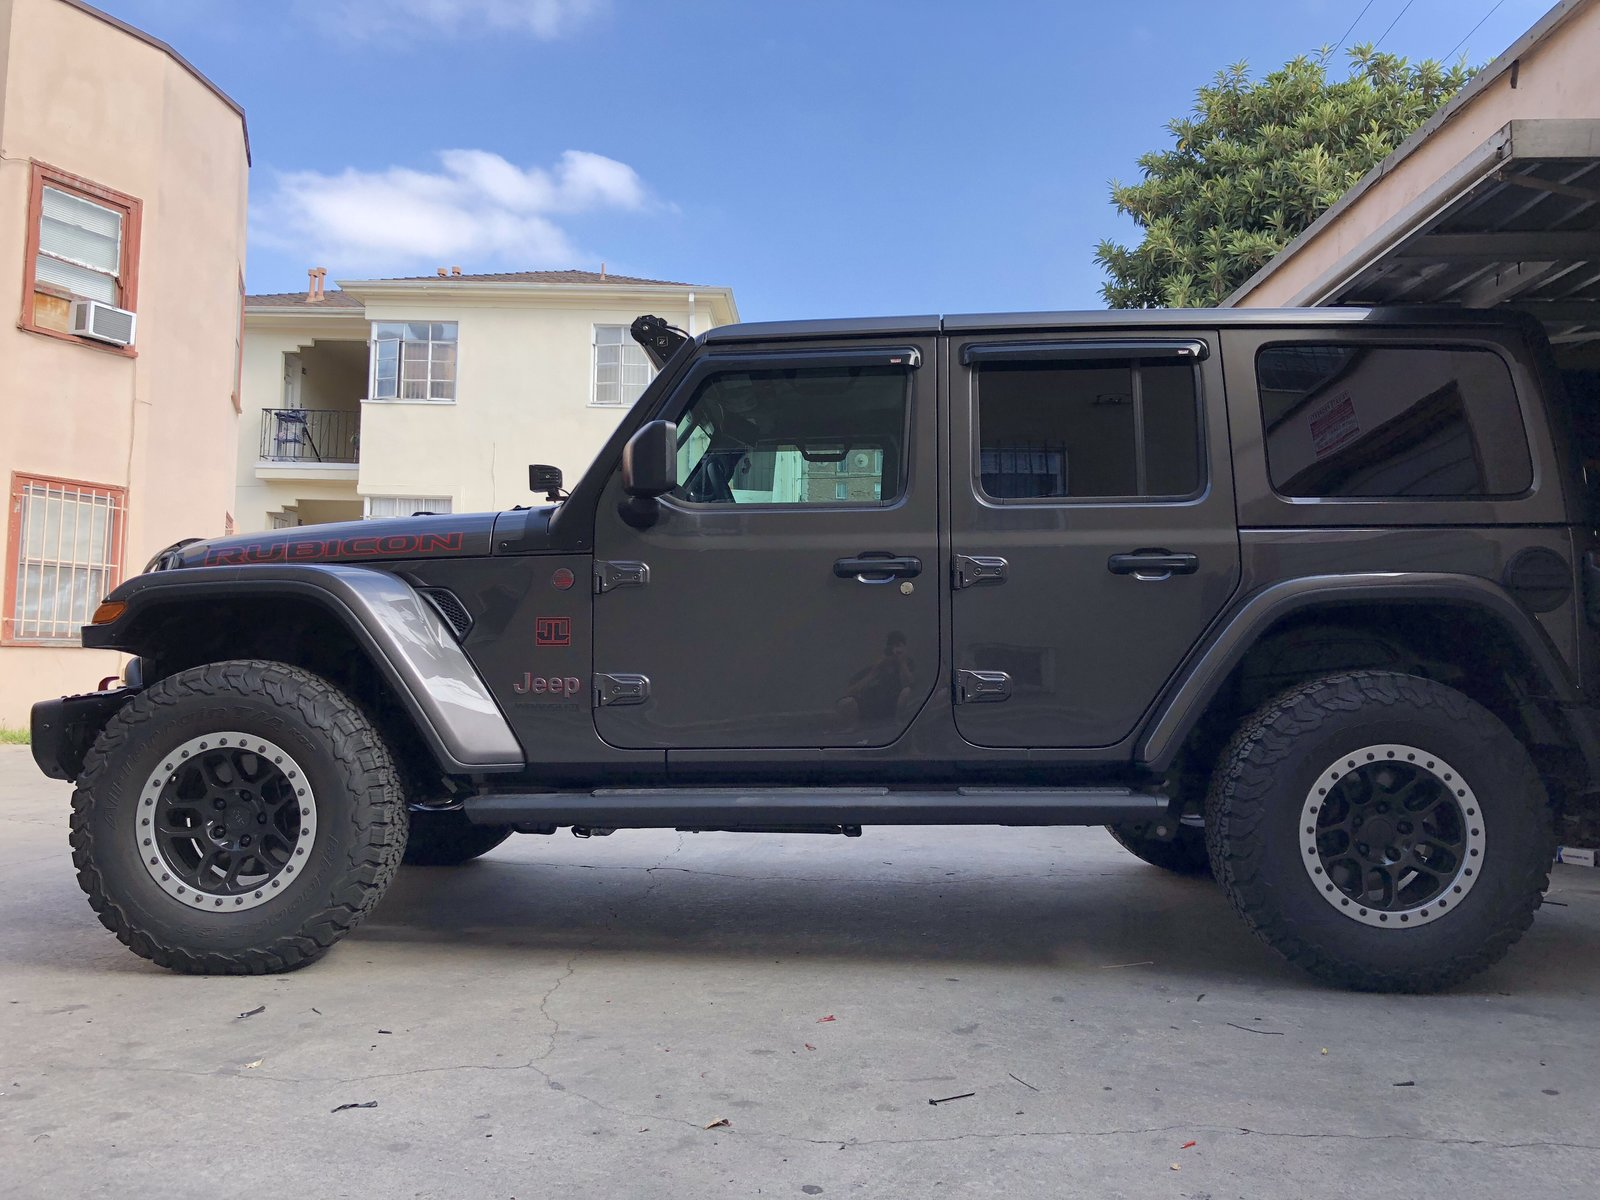 Jeep Leveling Kit >> Rubicon With Teraflex Leveling Kit Installed 2018 Jeep Wrangler